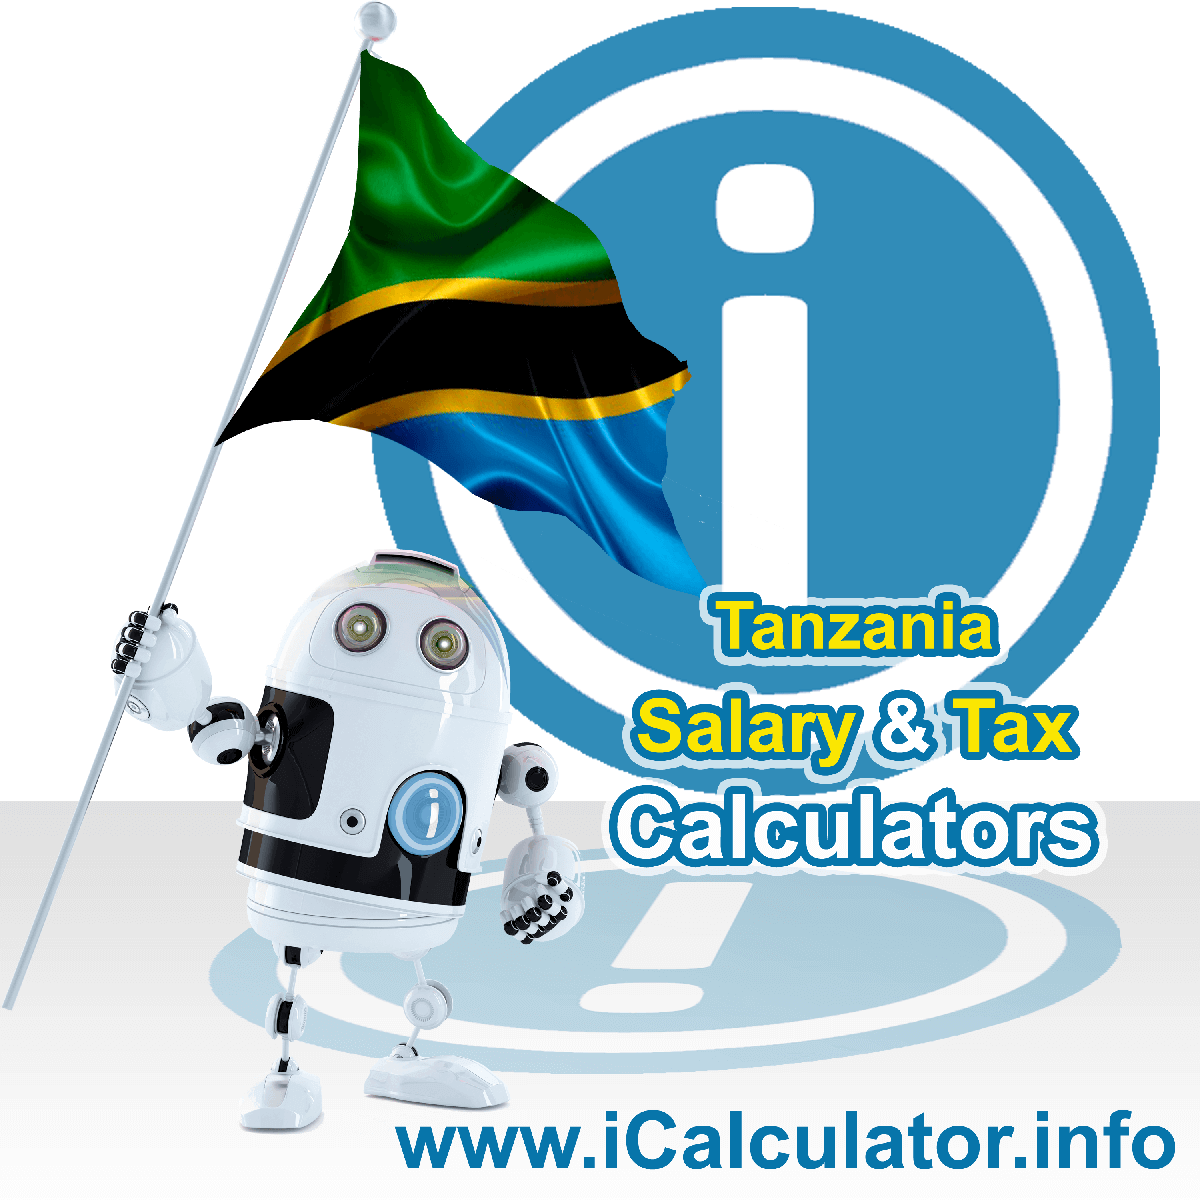 Tanzania Wage Calculator. This image shows the Tanzania flag and information relating to the tax formula for the Tanzania Tax Calculator